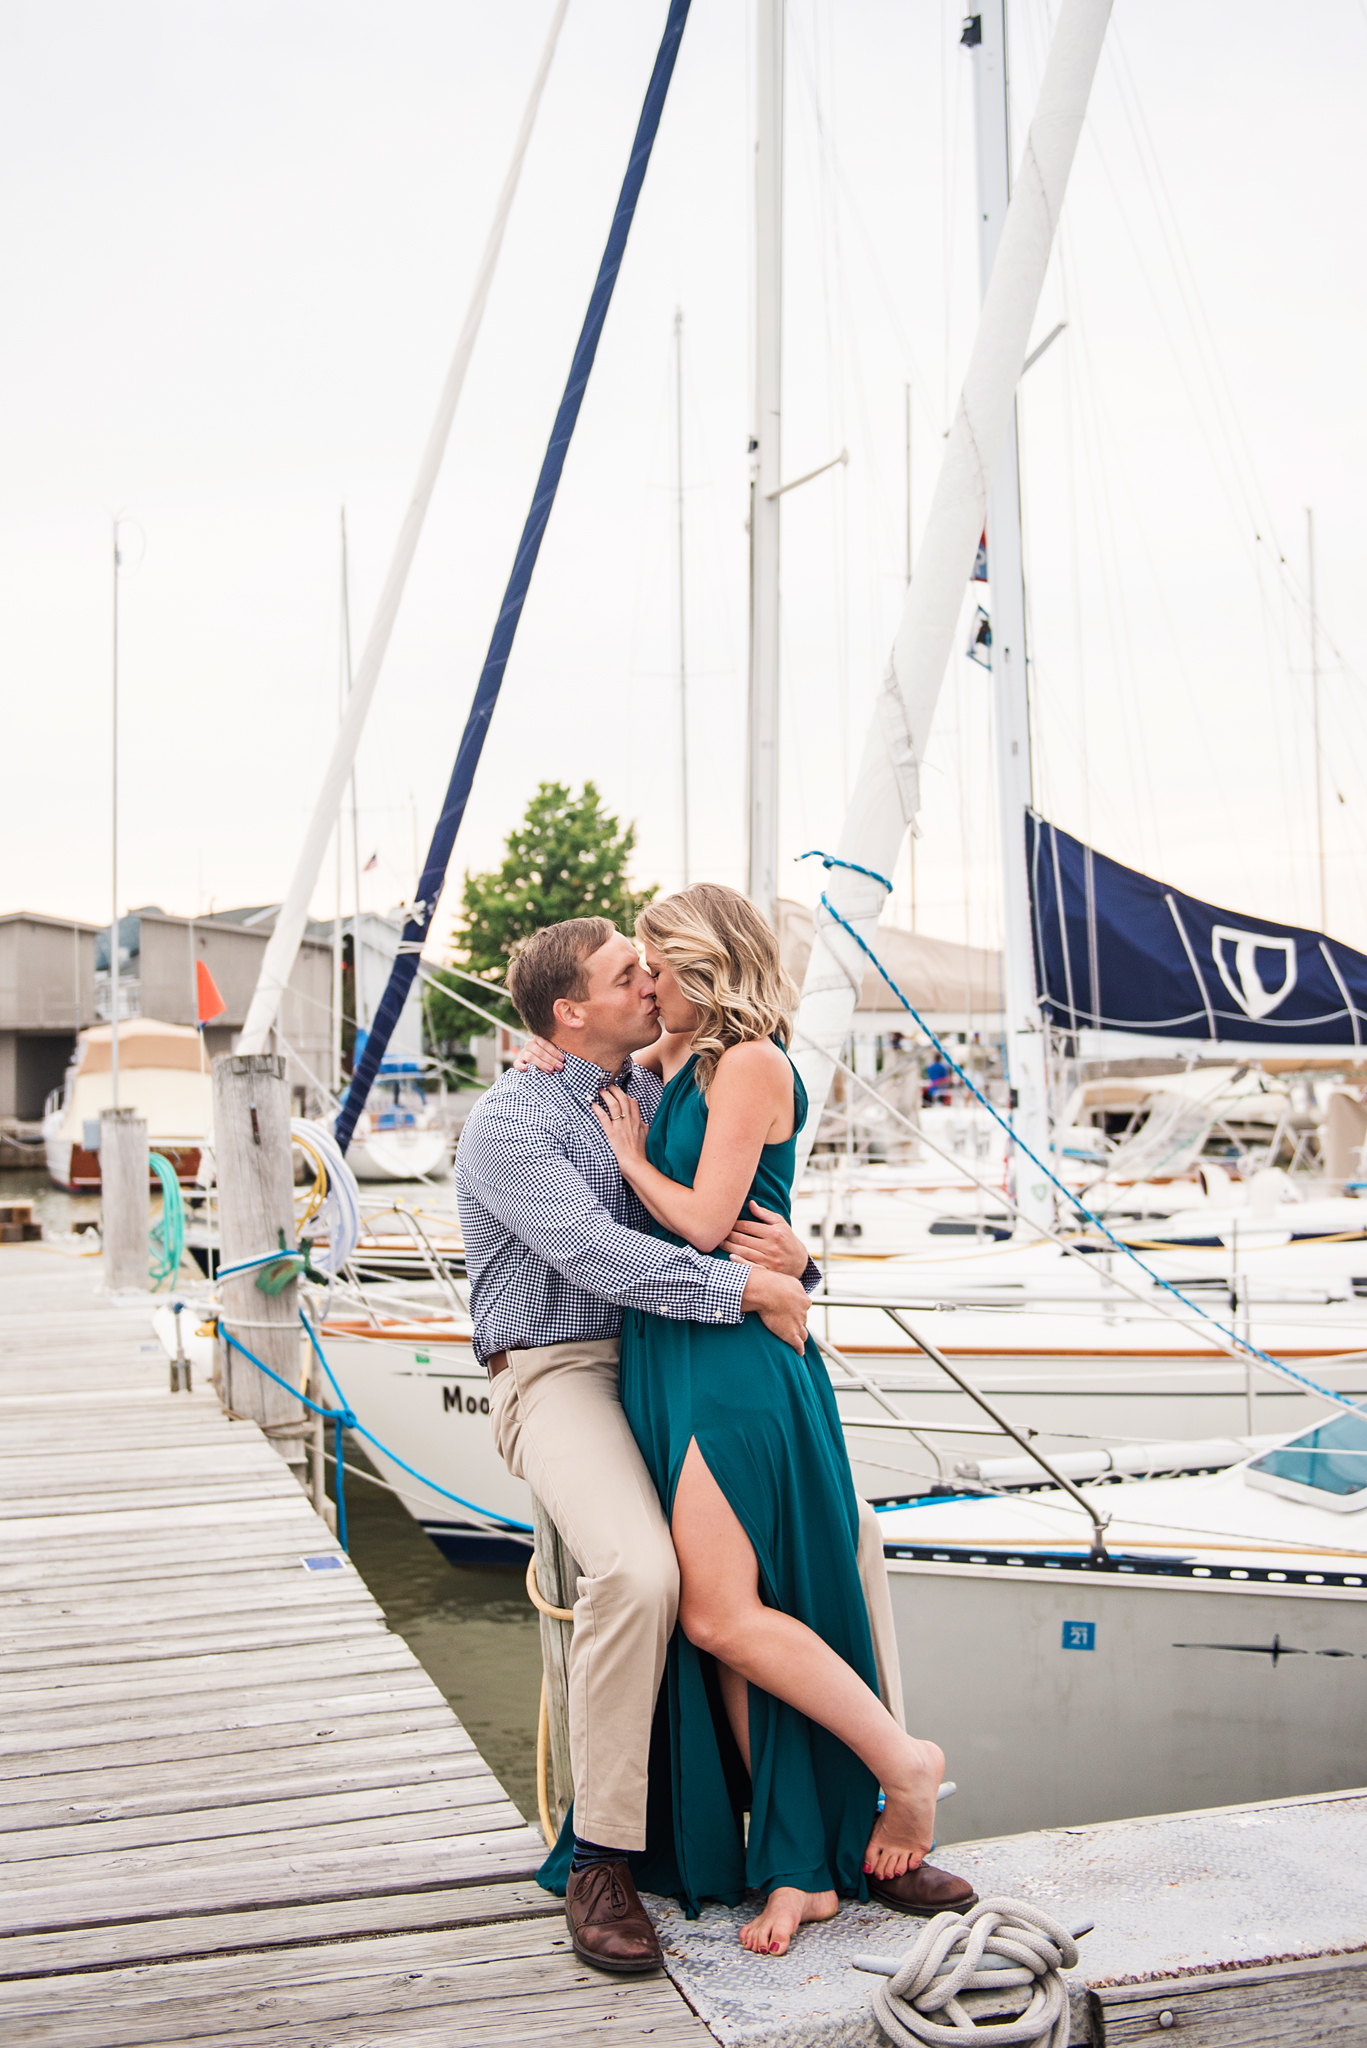 George_Eastman_House_Rochester_Yacht_Club_Rochester_Engagement_Session_JILL_STUDIO_Rochester_NY_Photographer_DSC_8206.jpg